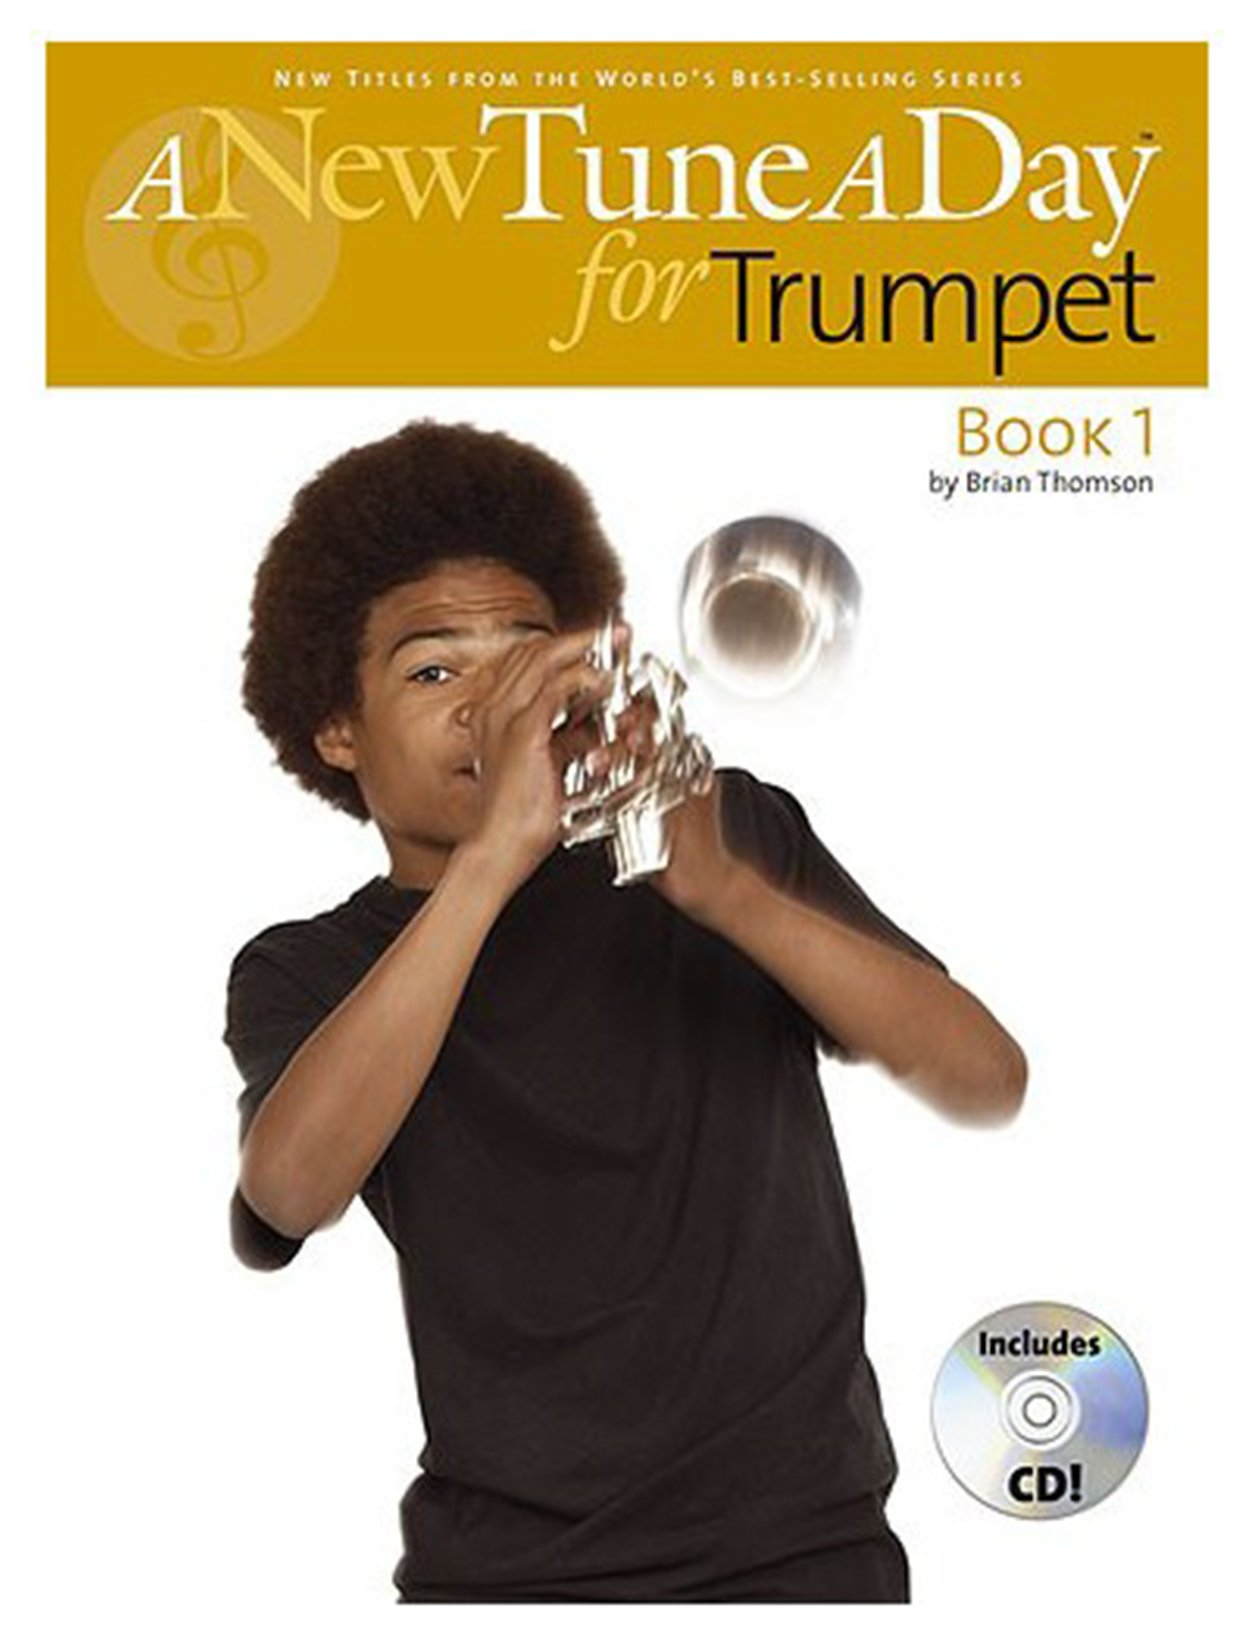 Image of Boston Music - A New Tune a Day for Trumpet - Book One